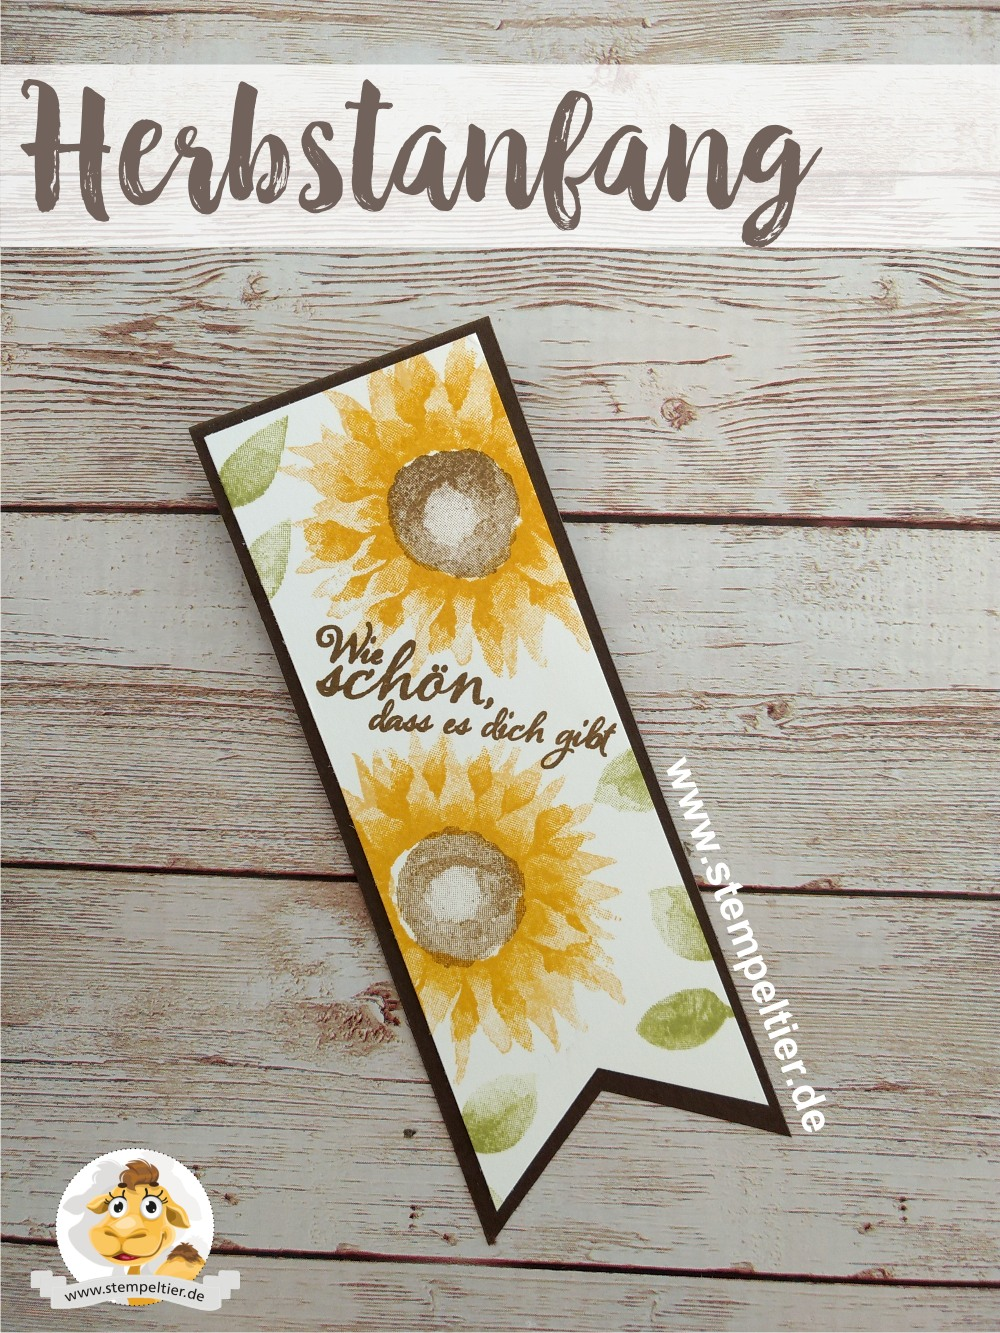 stampin up vorschau herbstanfang sonnenblumen 2step winterkatalog 2017 sunflower autumn preview stempeltier